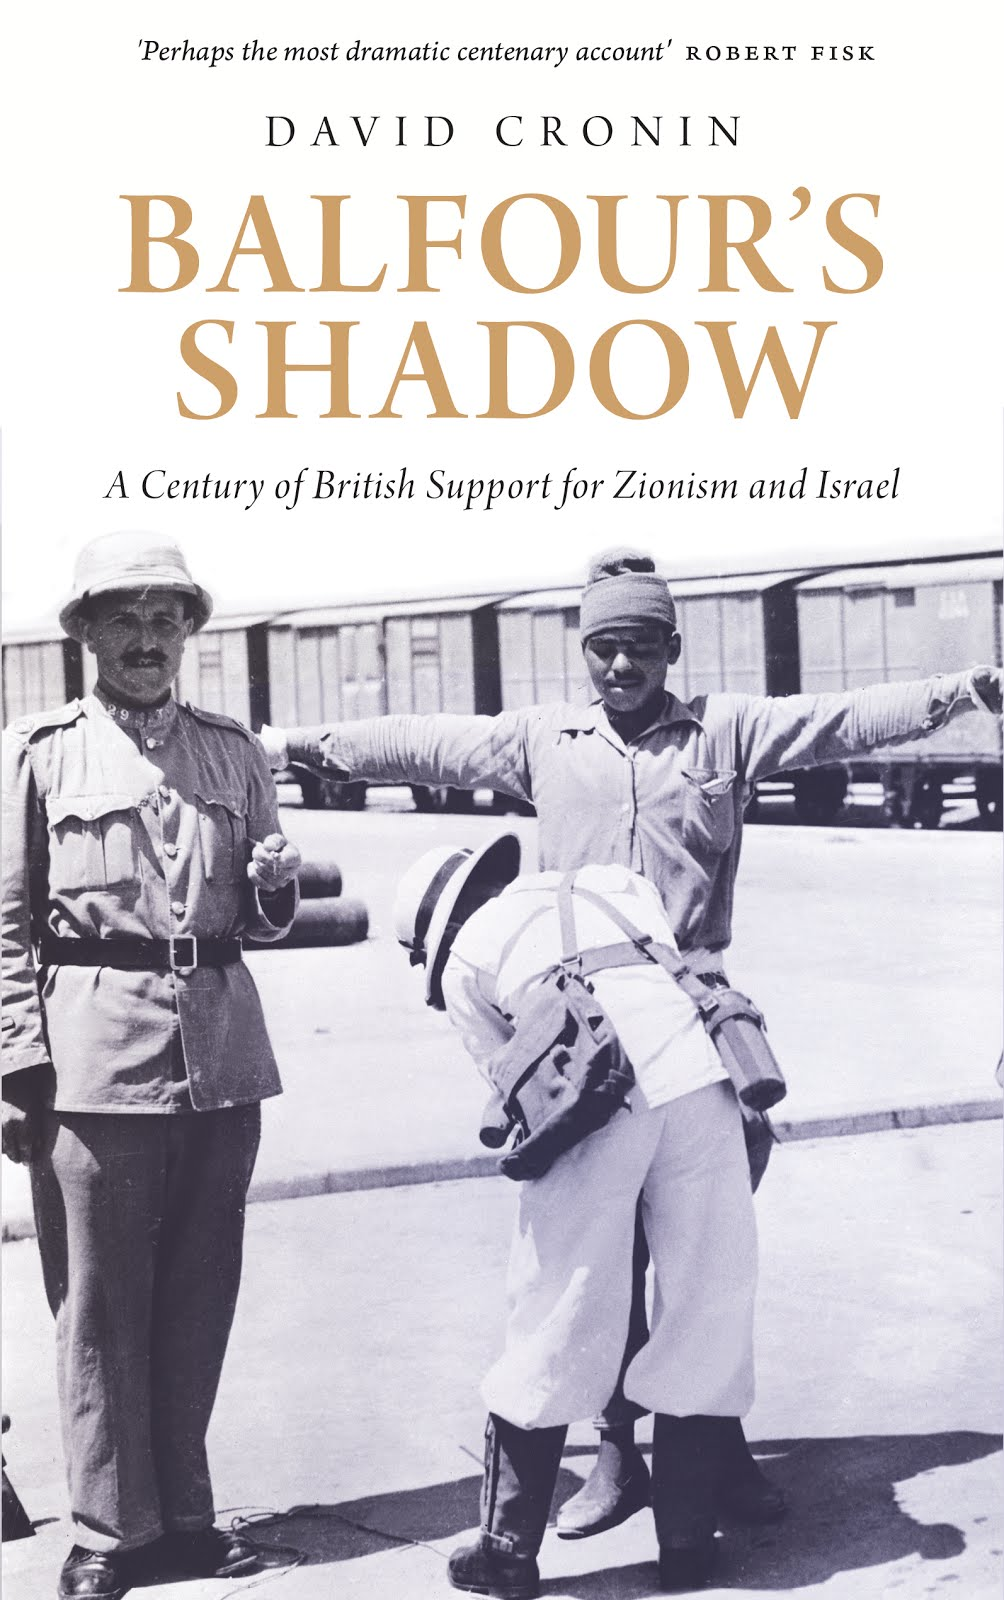 My new book 'Balfour's Shadow'